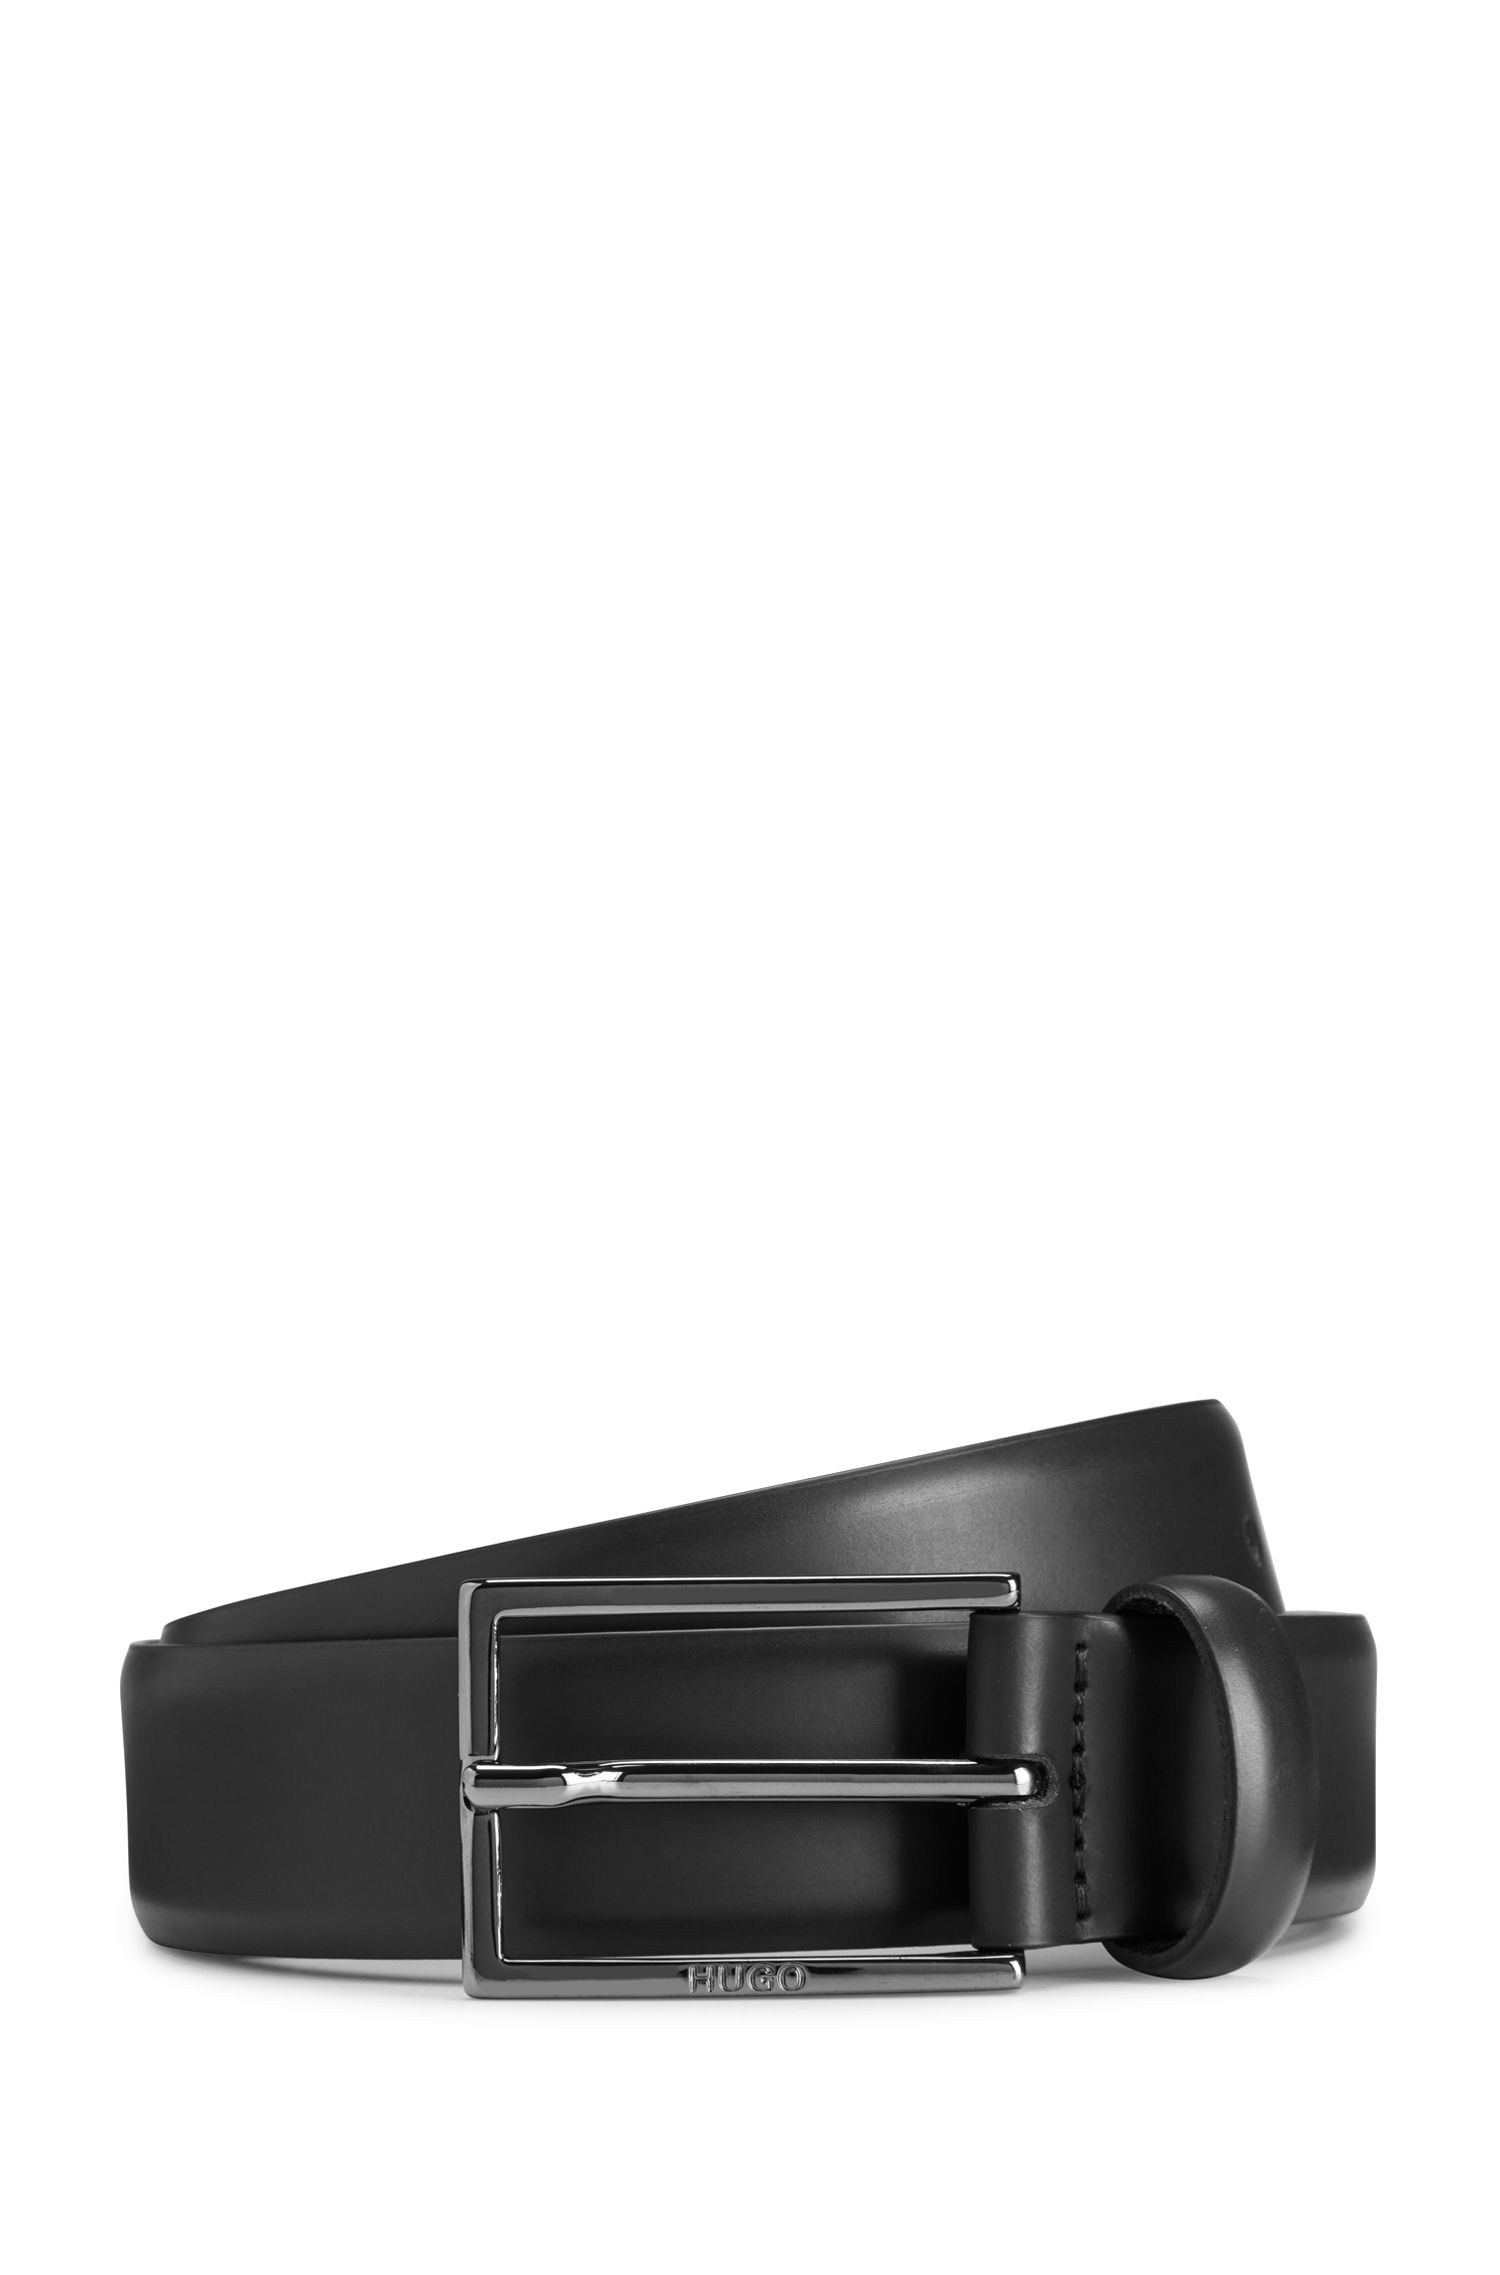 Studded Leather Belt | Gavri Sz30, Black